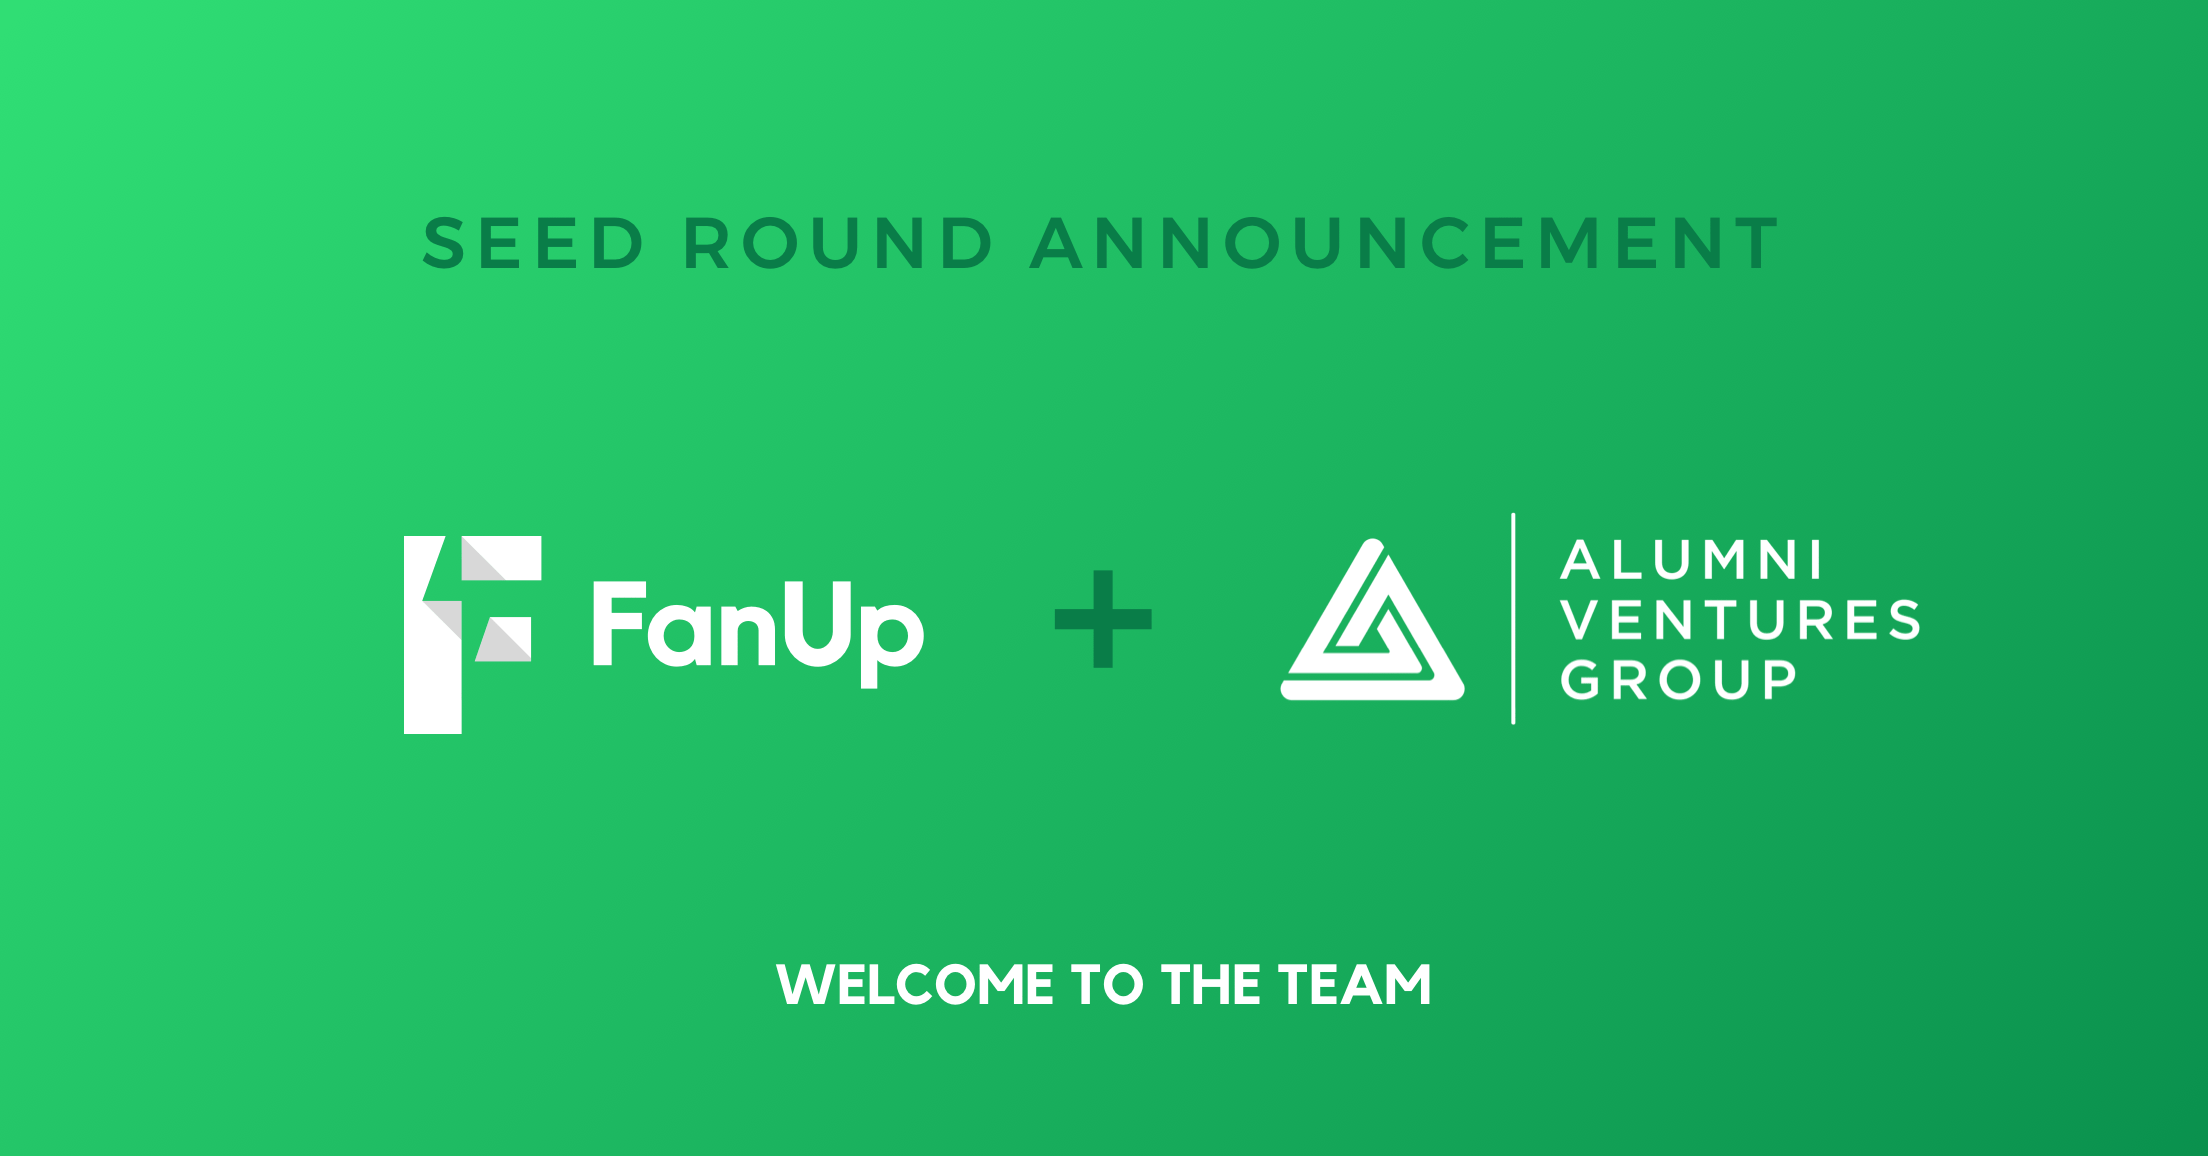 FanUp Hits Walk-Off Game Winner as Alumni Ventures Group Joins Team of Sports/Esports Seed Investors